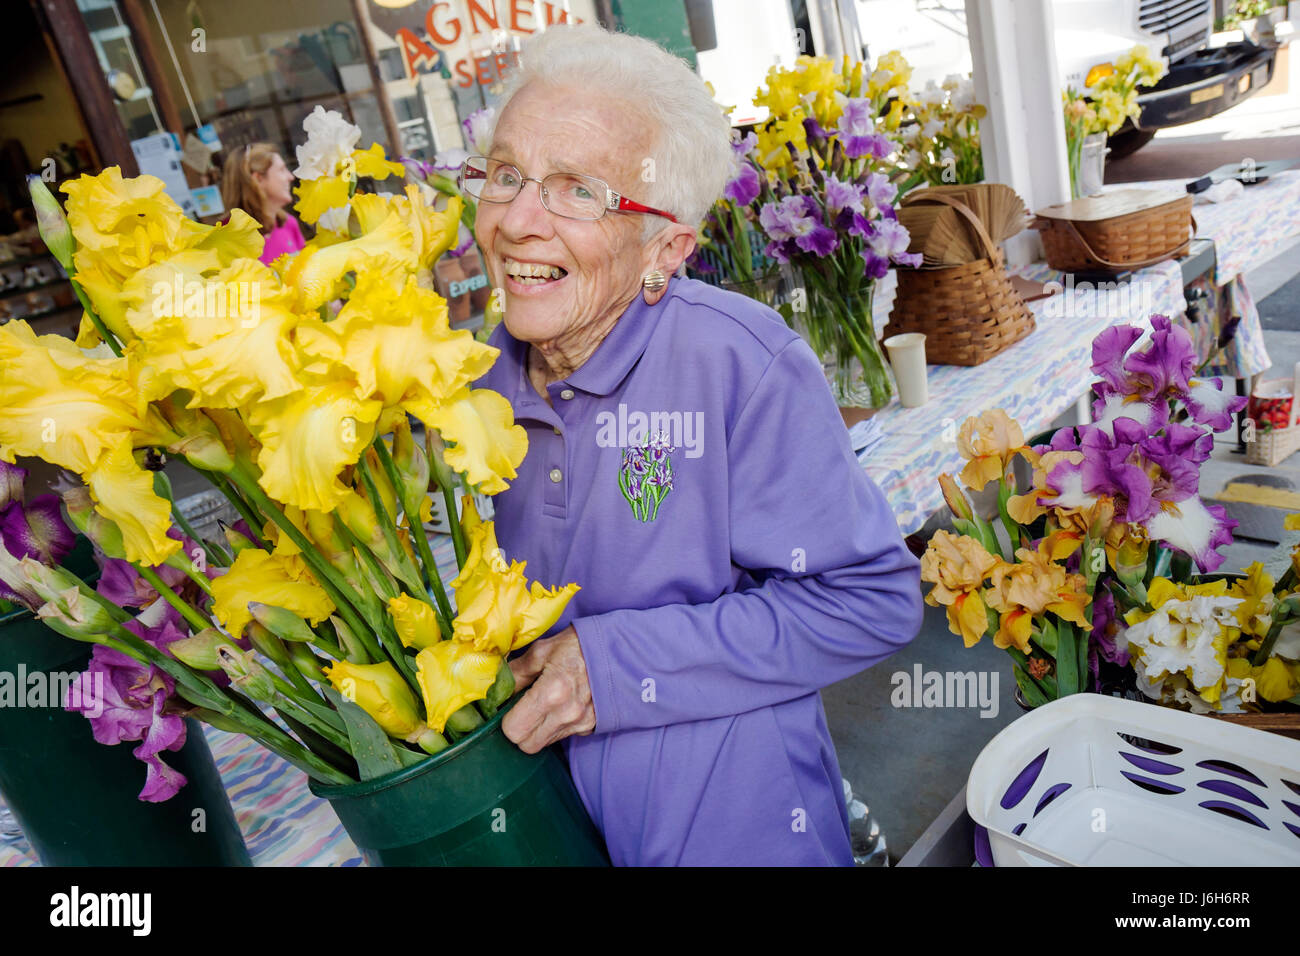 Virginia Roanoke Market Square Farmers' Market woman senior active working smiling flower shop florist vases - Stock Image